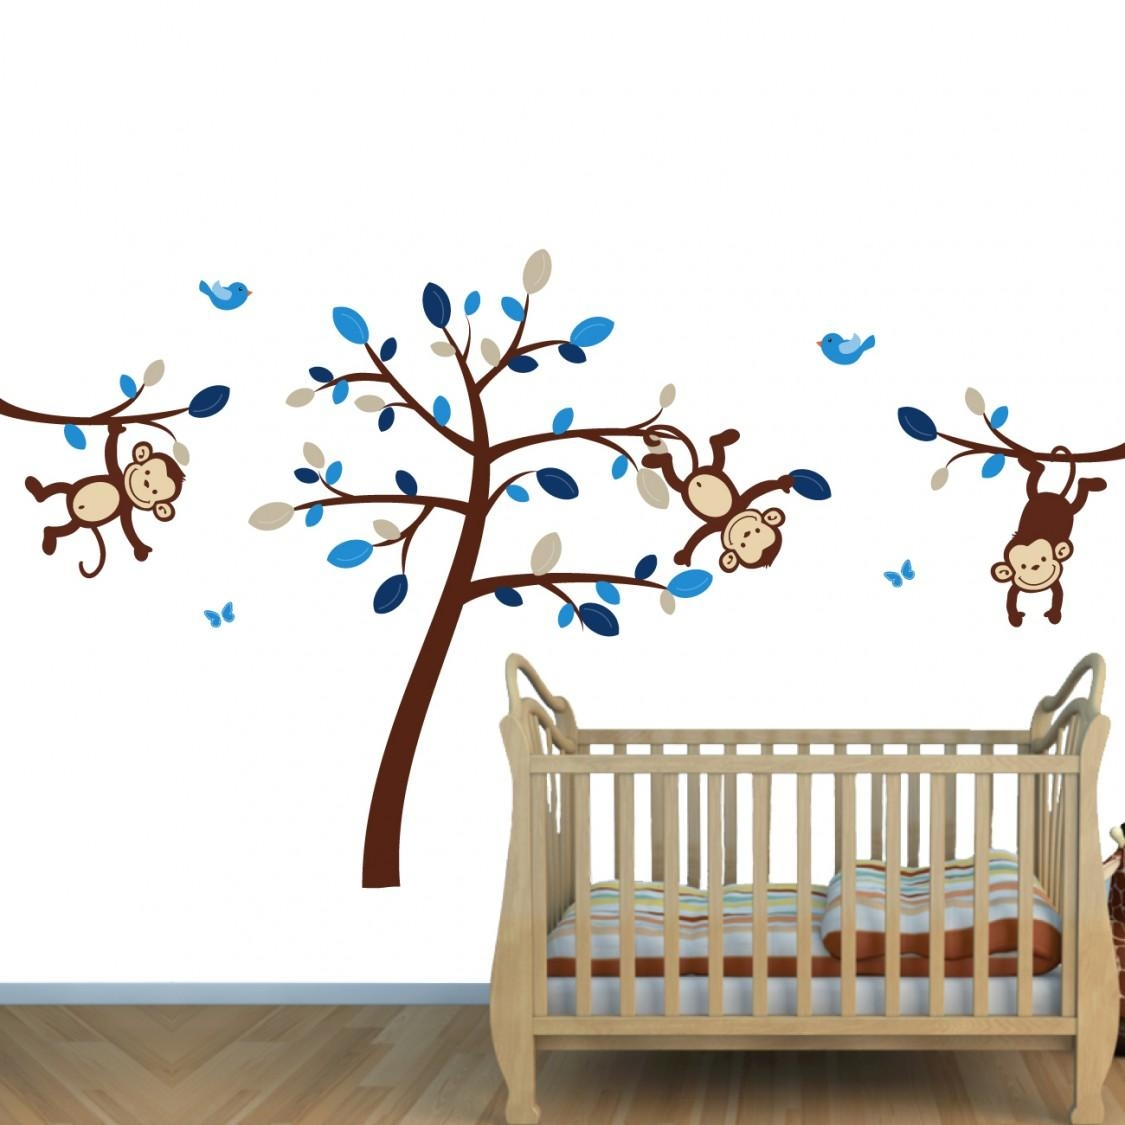 & Blue Jungle Murals For Kids & Monkey Wall Art For Boys Rooms Within Sock Monkey Wall Art (View 4 of 20)